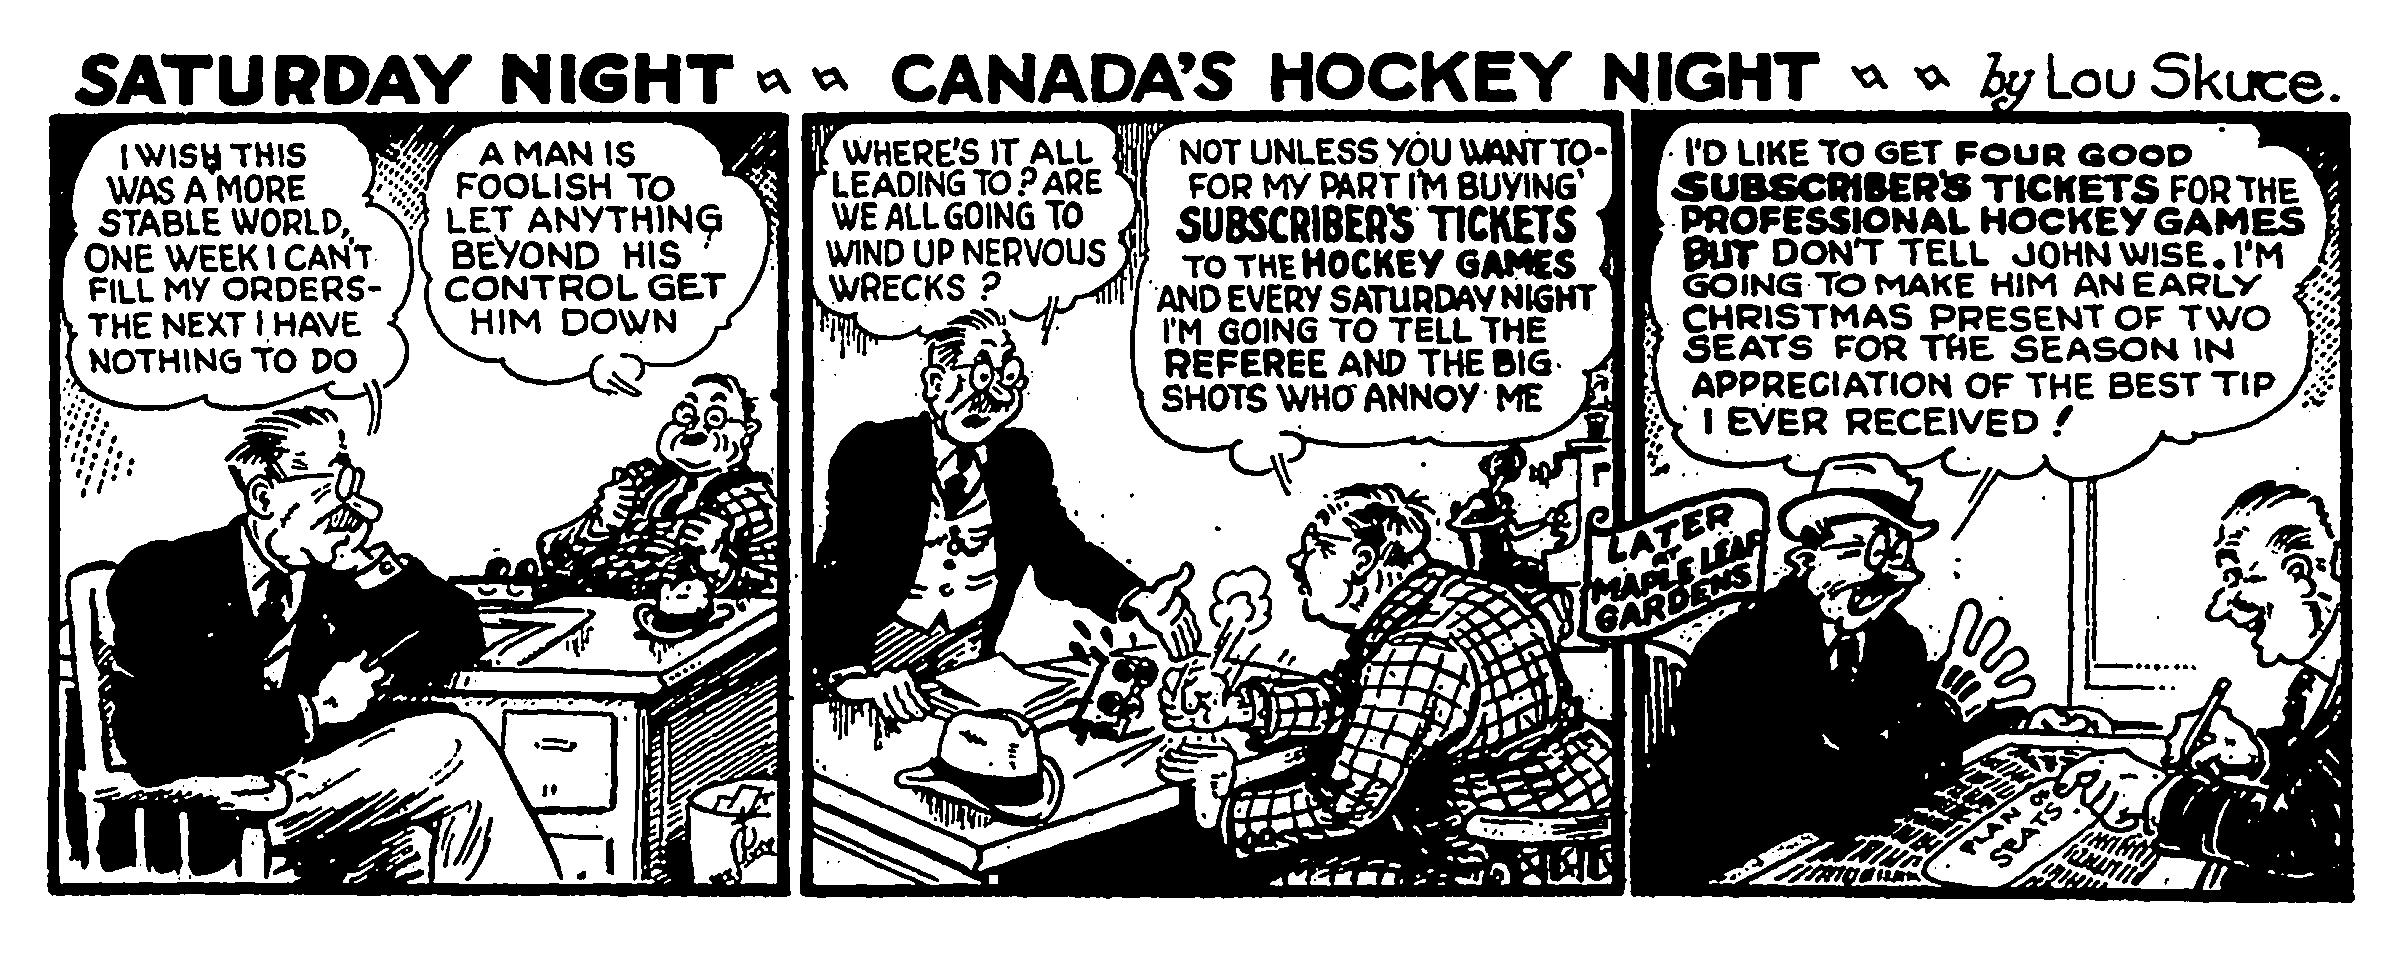 Toronto Maple Leafs ad by Lou Skuce, October 26, 1940